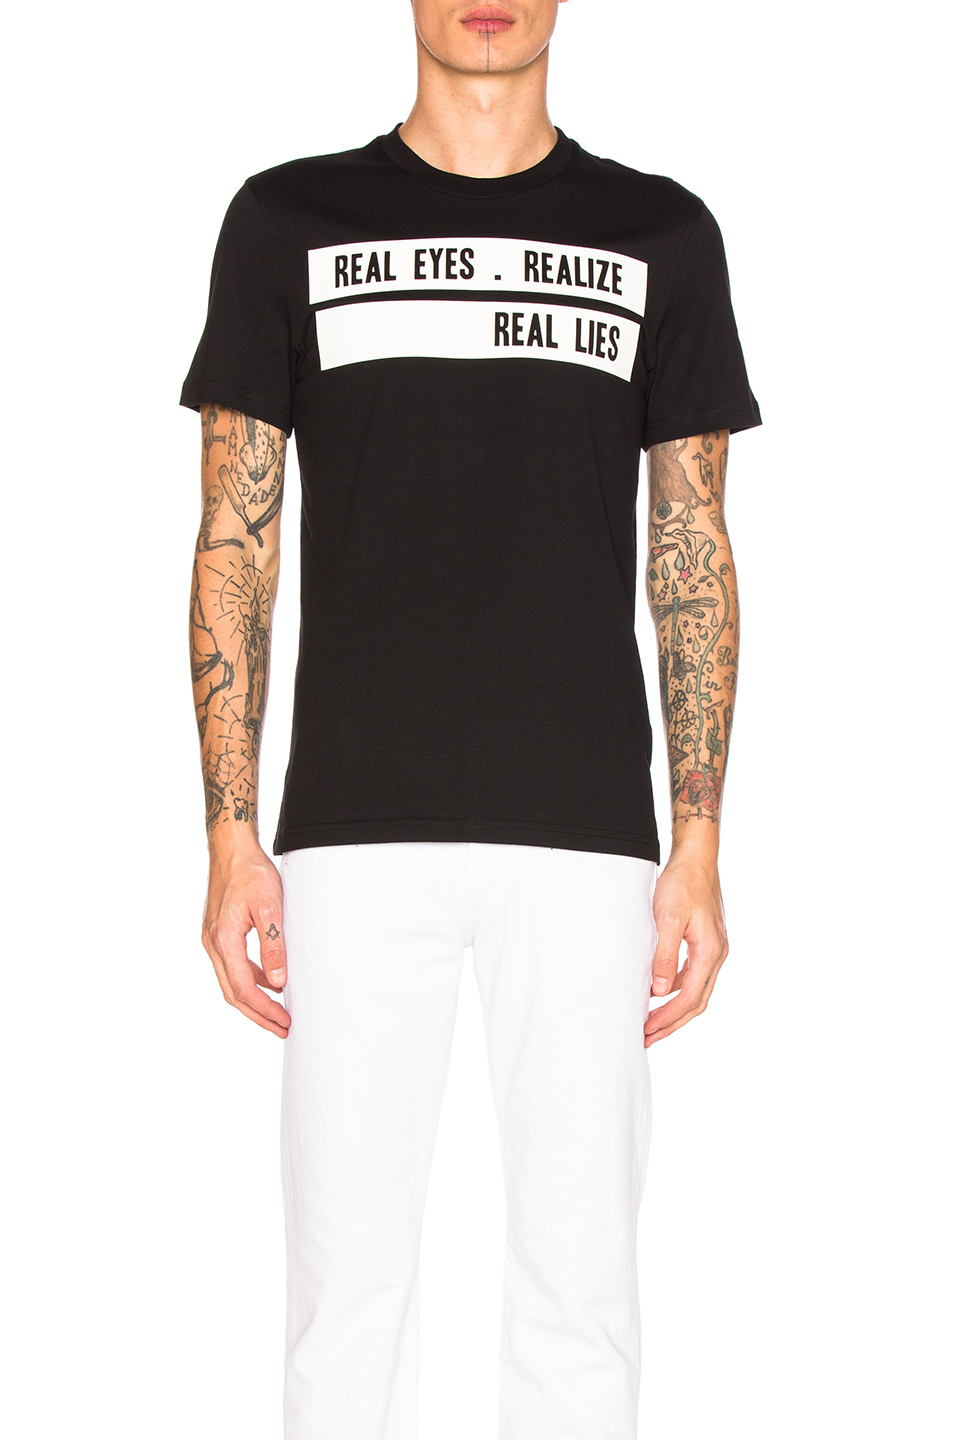 Givenchy Realize Tee in Black